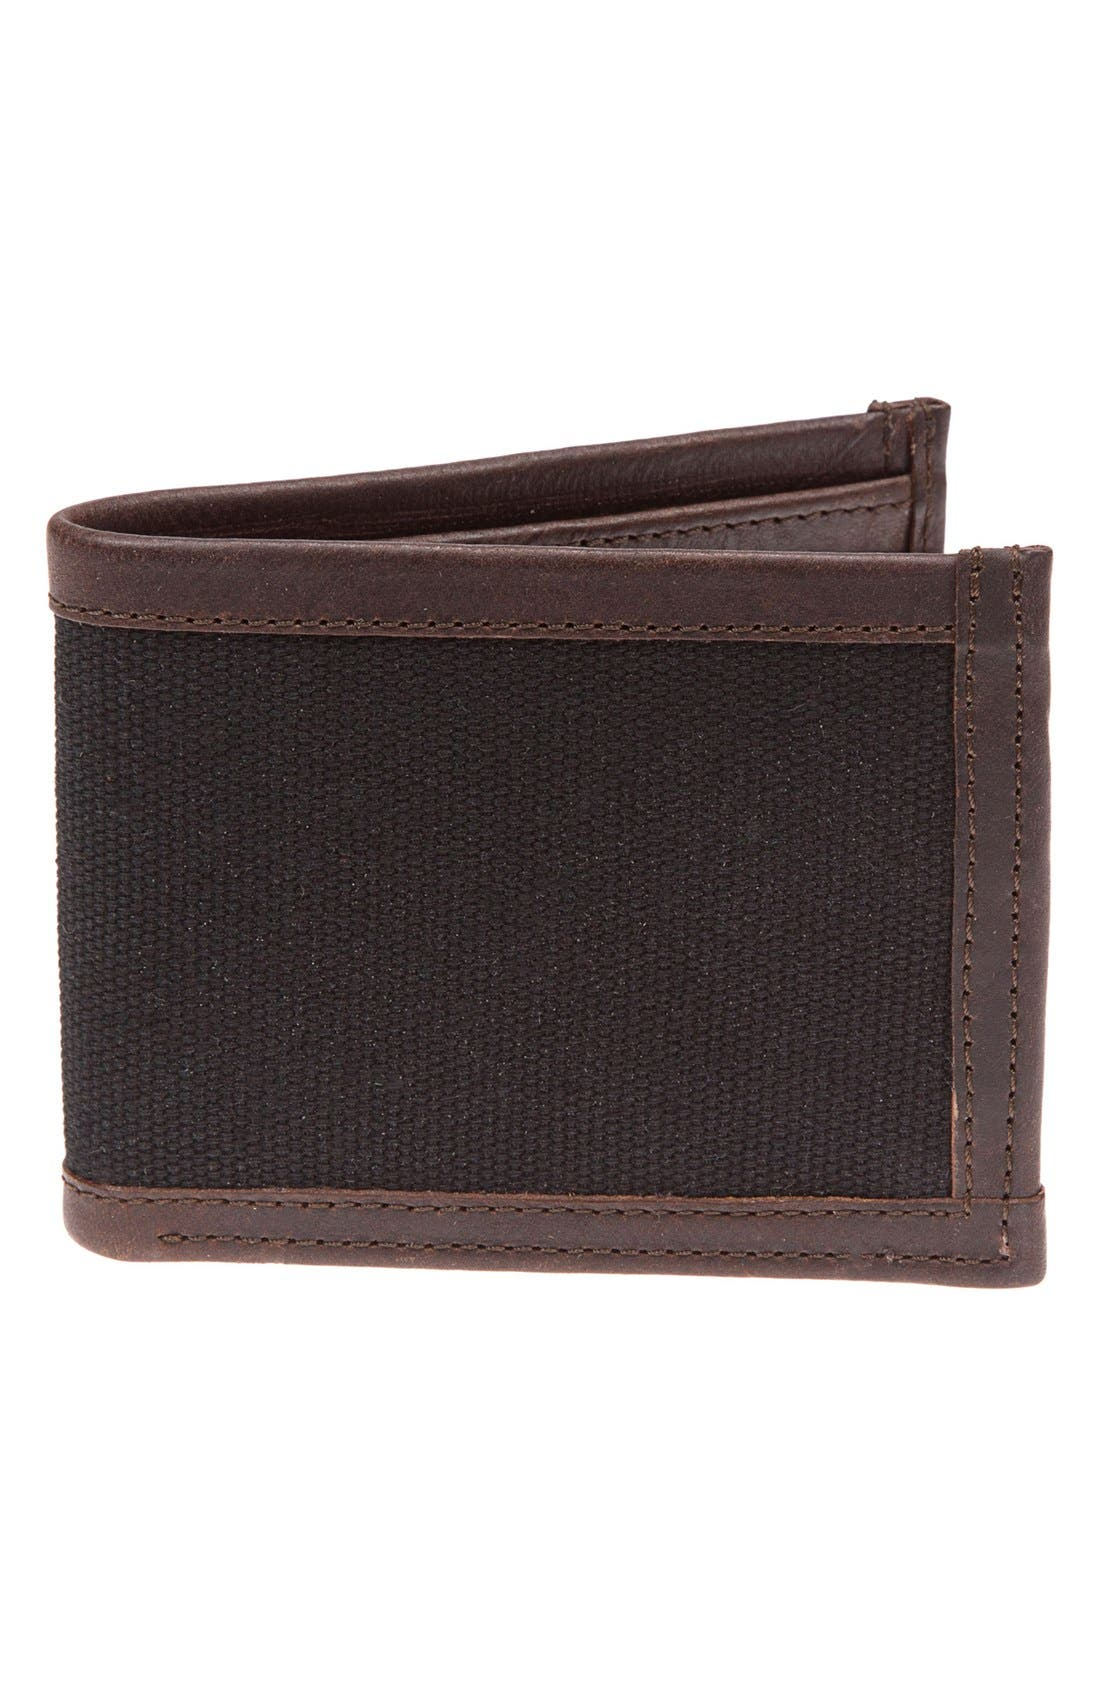 Alternate Image 1 Selected - Will Leather Goods 'Ethan' Wallet